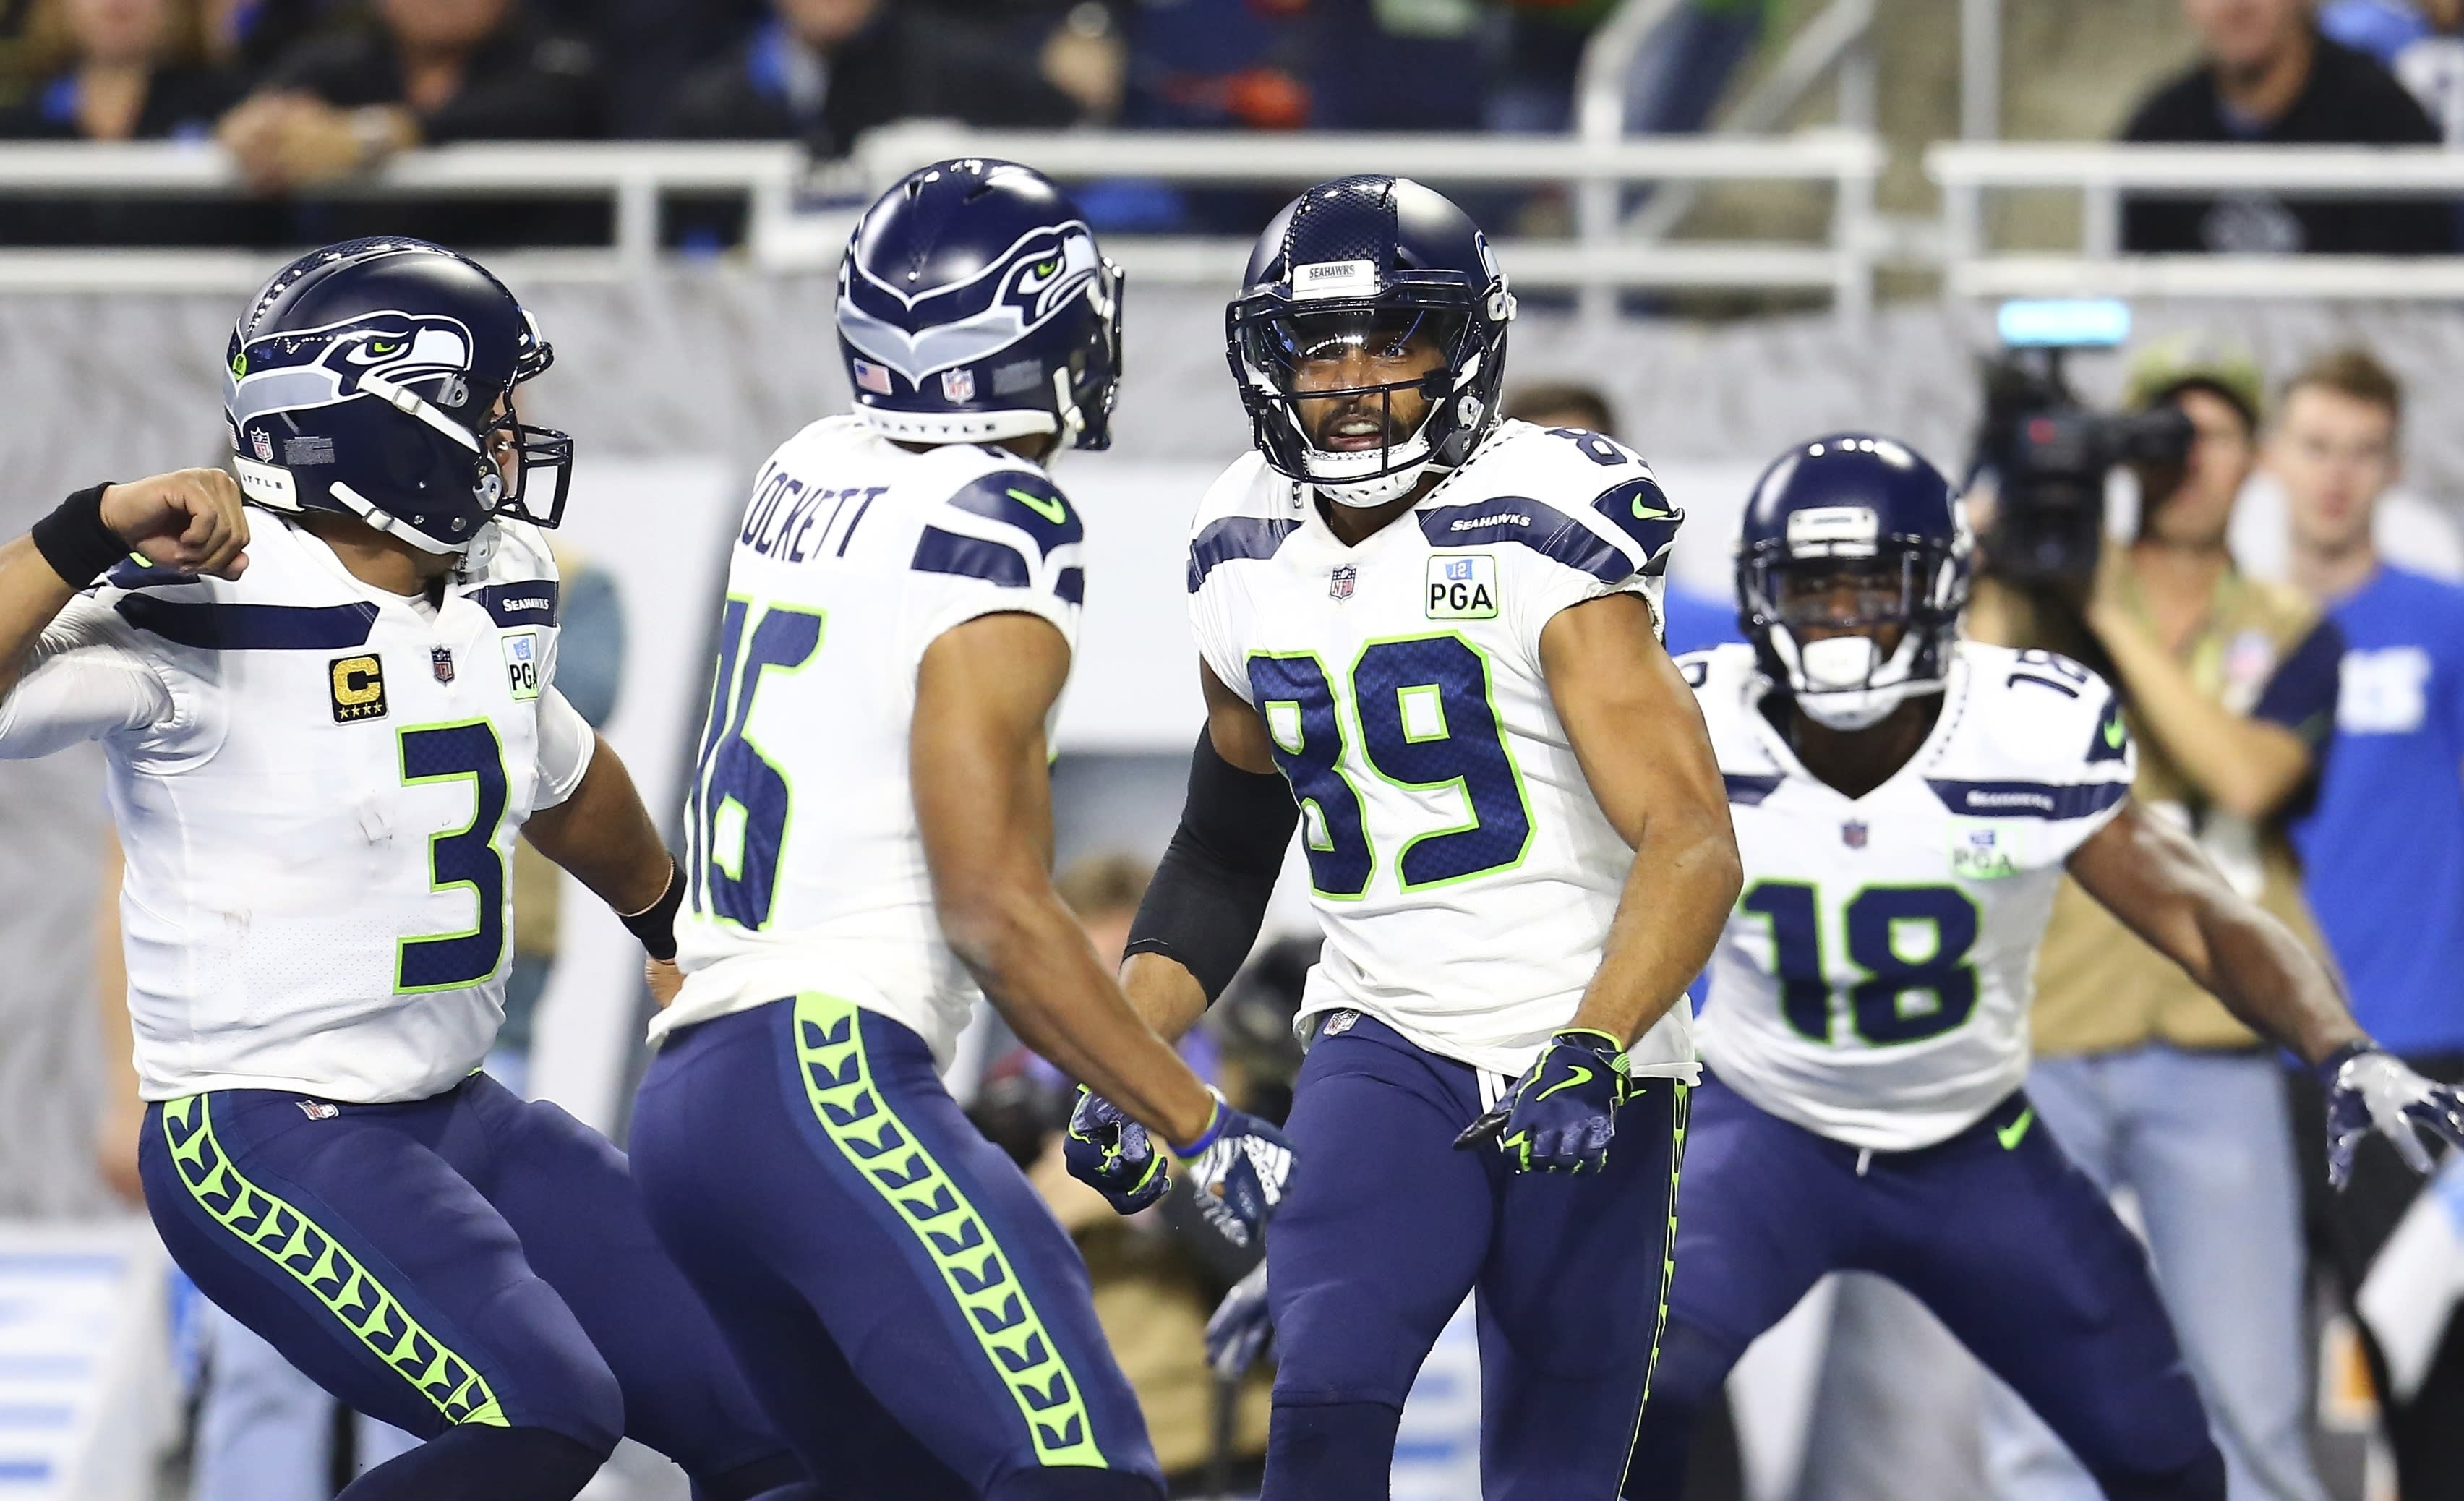 Week 10 Fantasy power rankings and full slate guide: Seahawks to keep pace with Rams